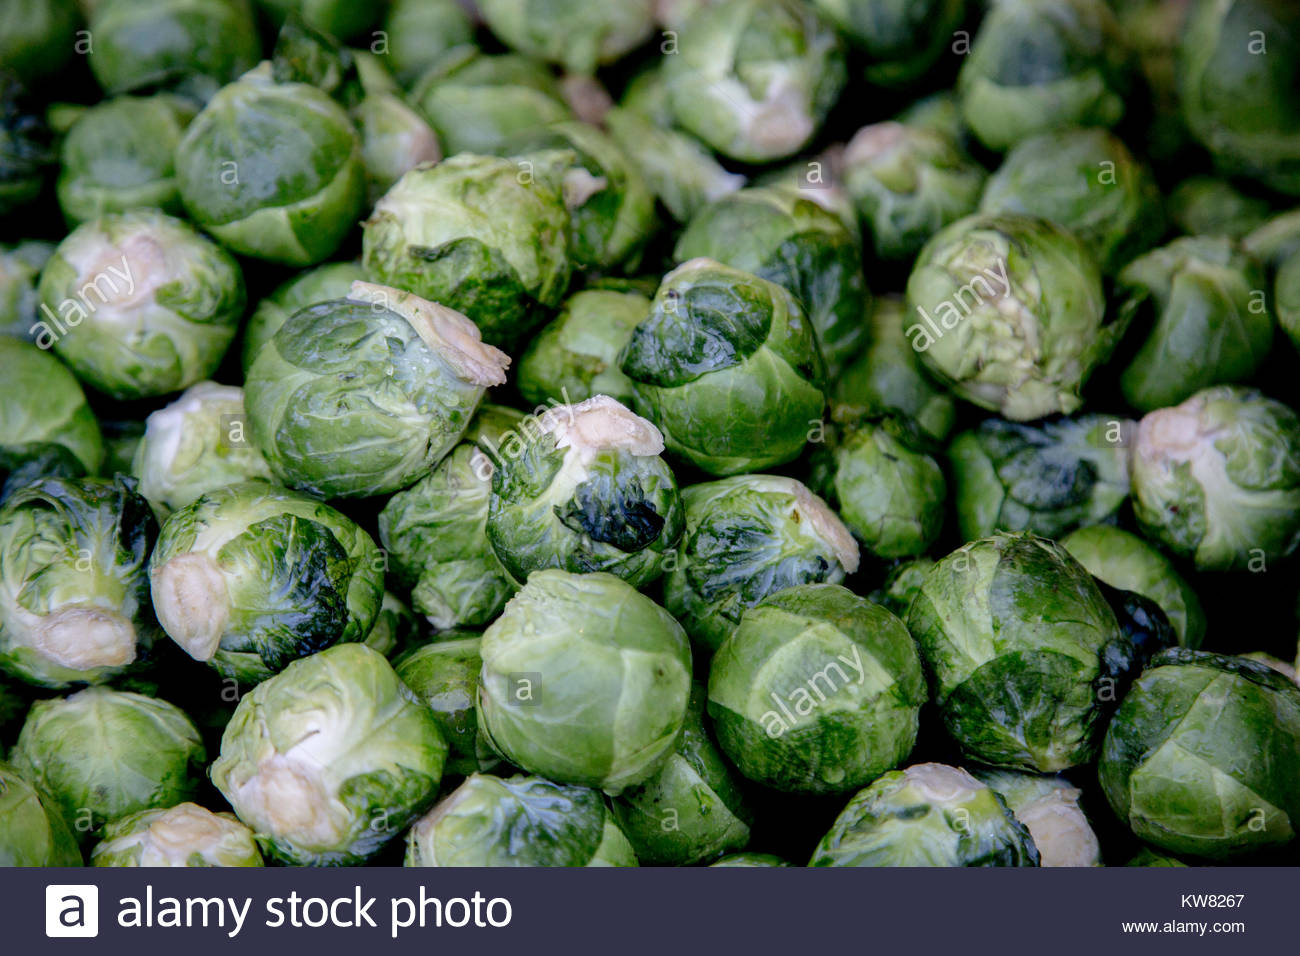 Sprouts - Stock Image